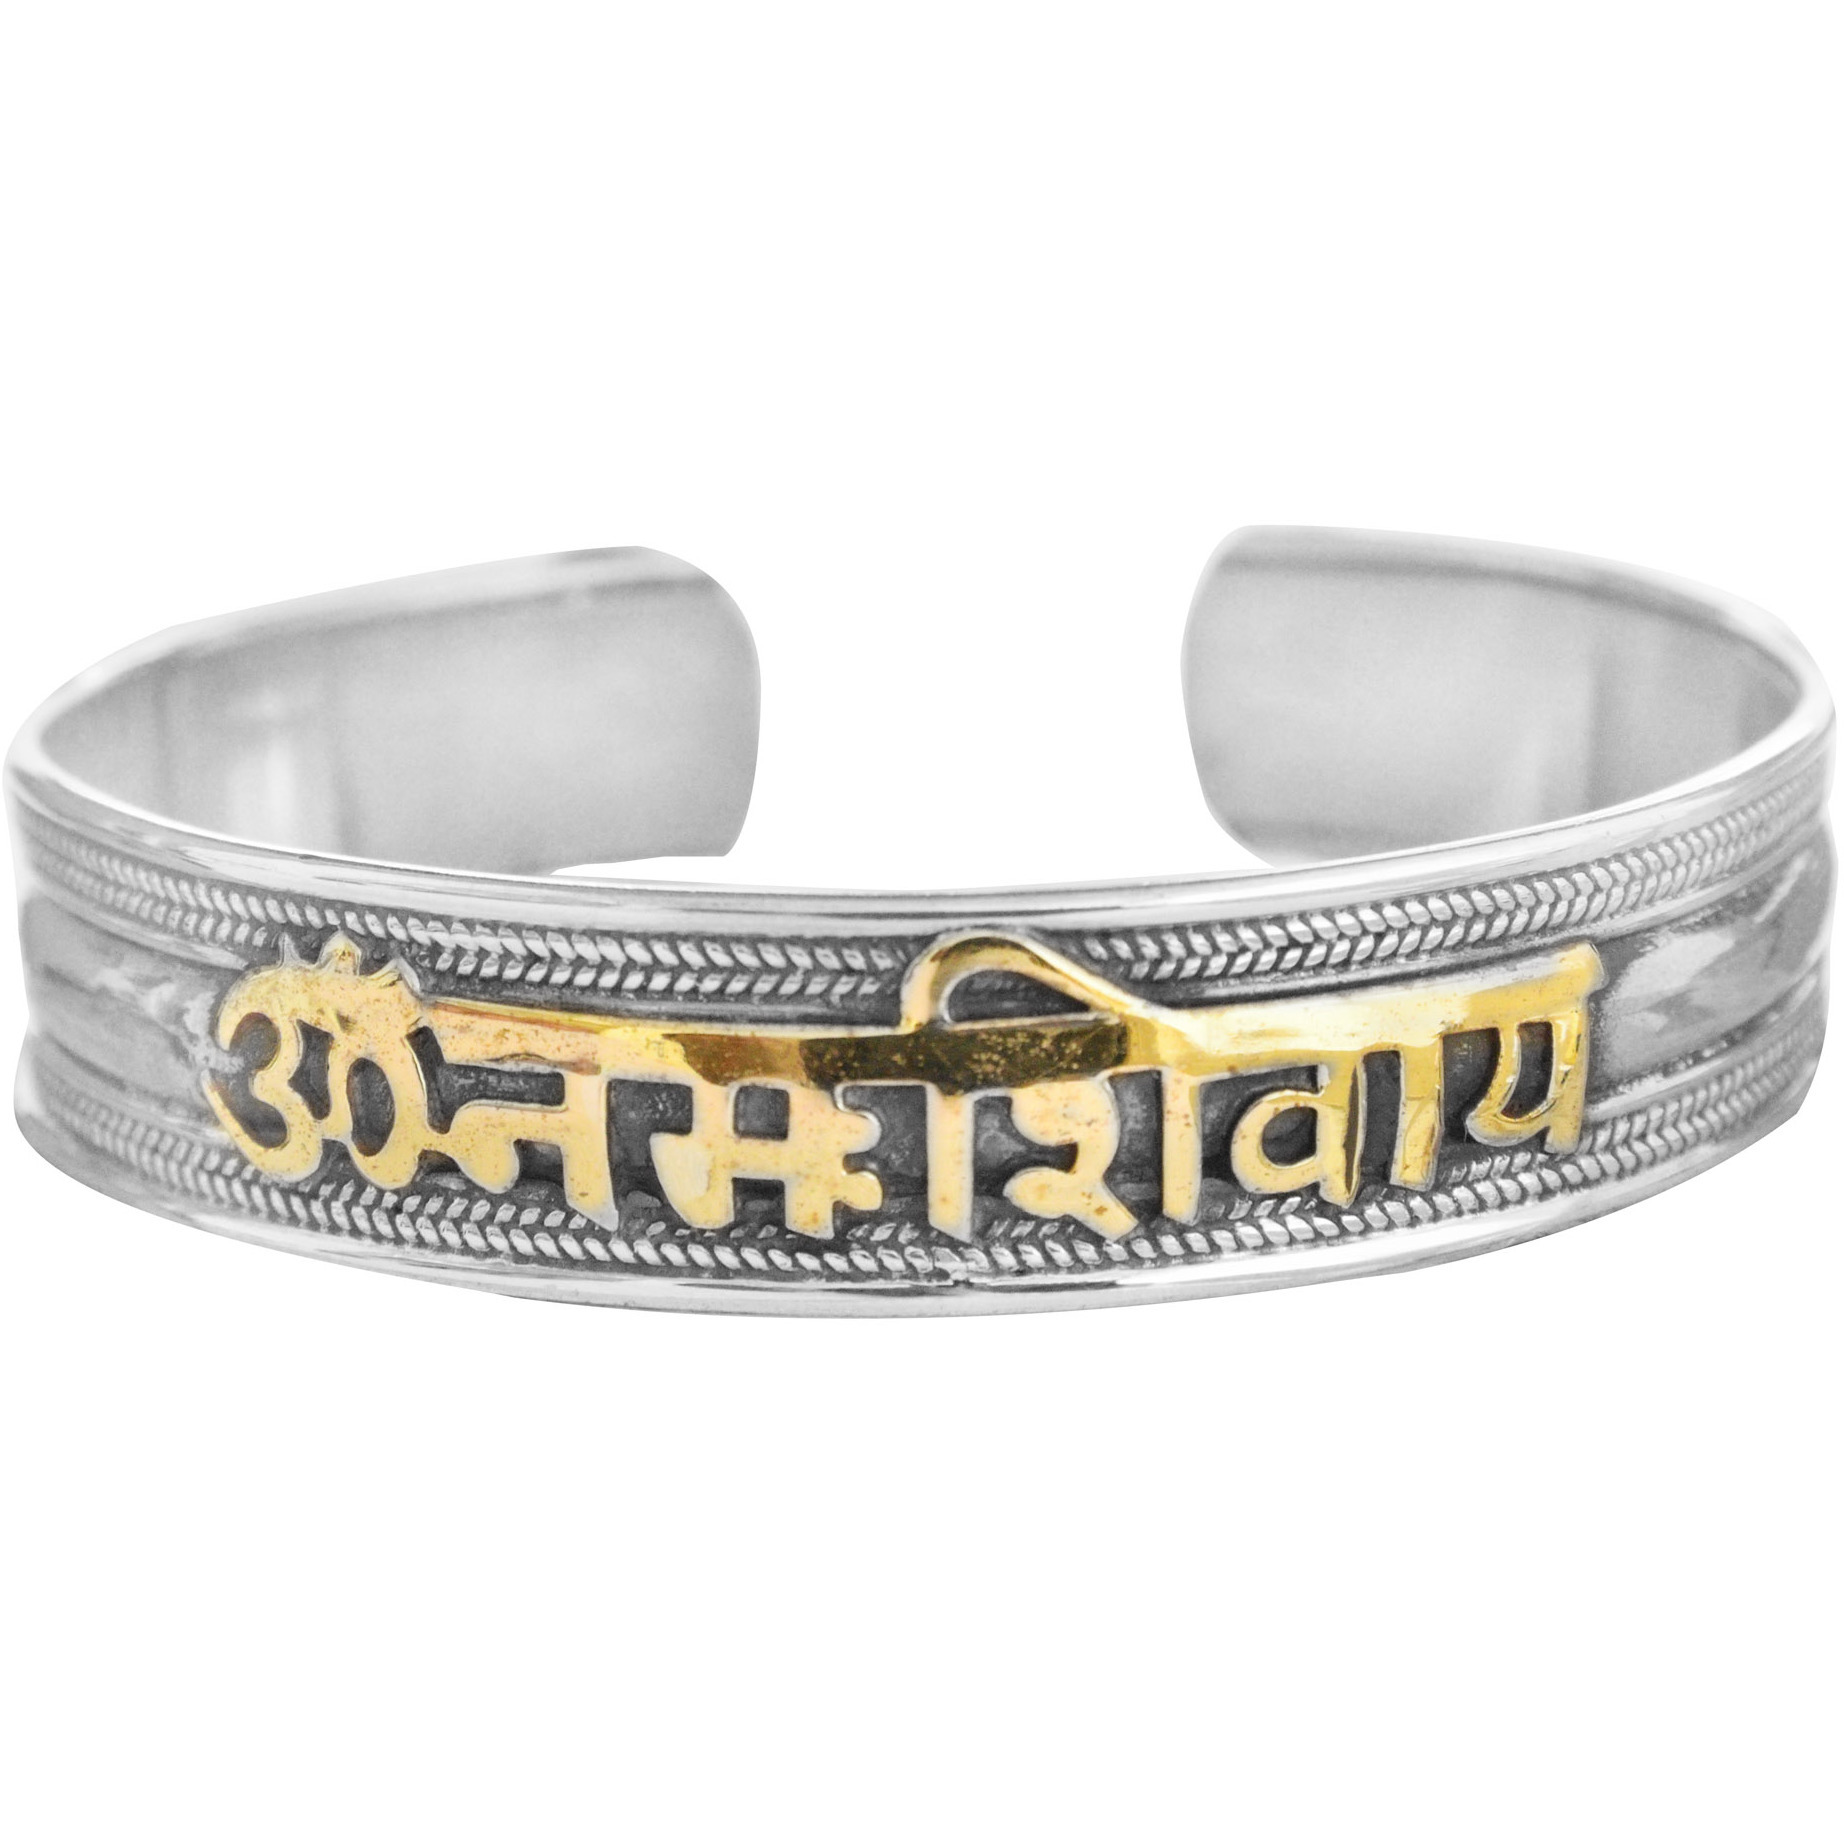 Om Namah Shivai Bracelet with Golden Accent